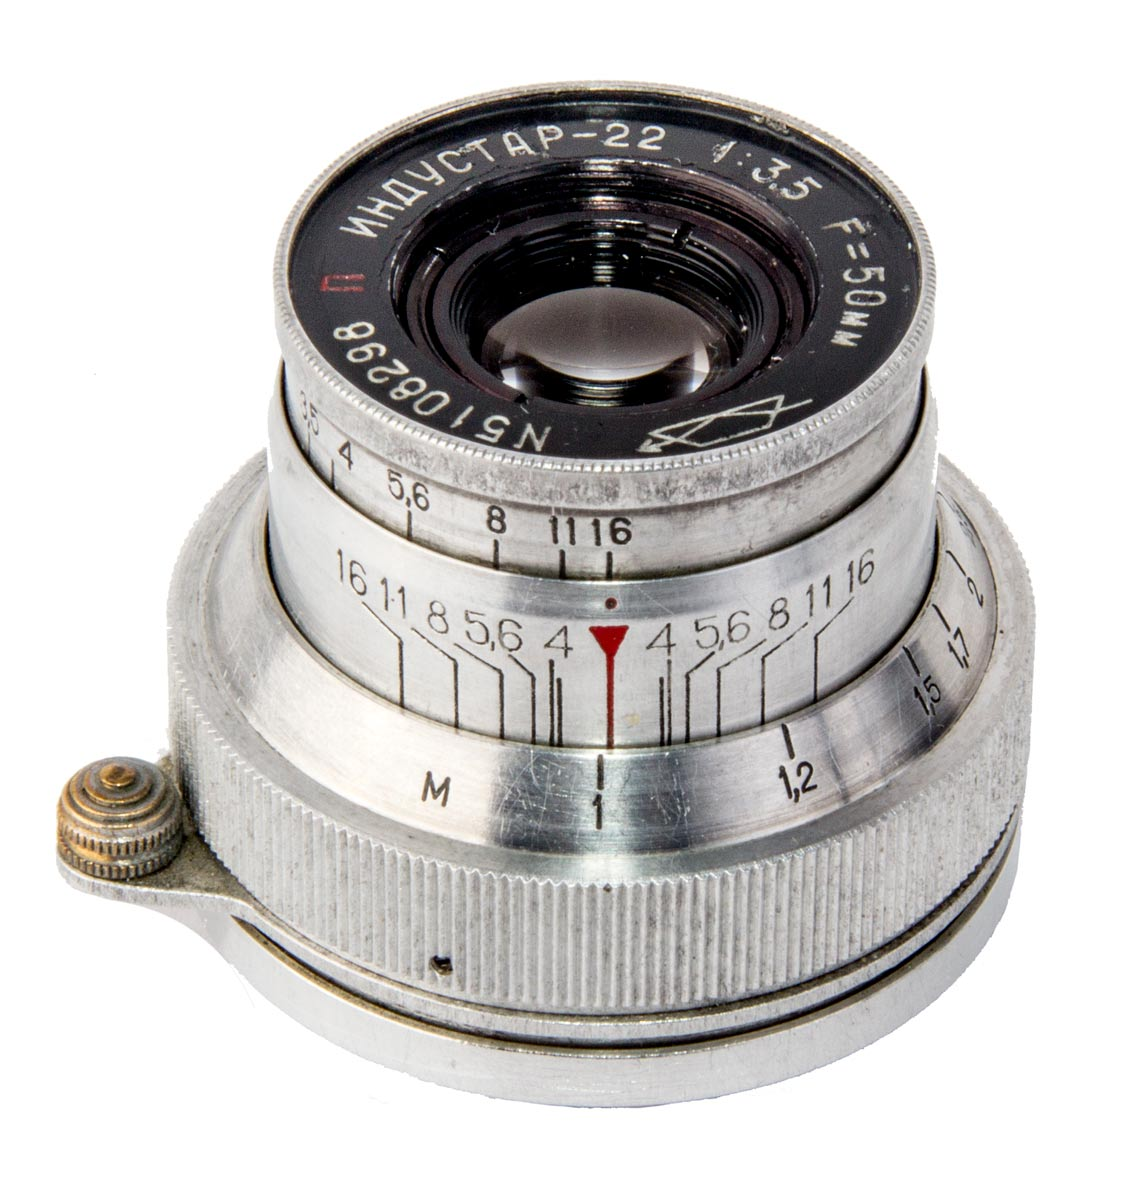 Industar 22 Fixed Lens